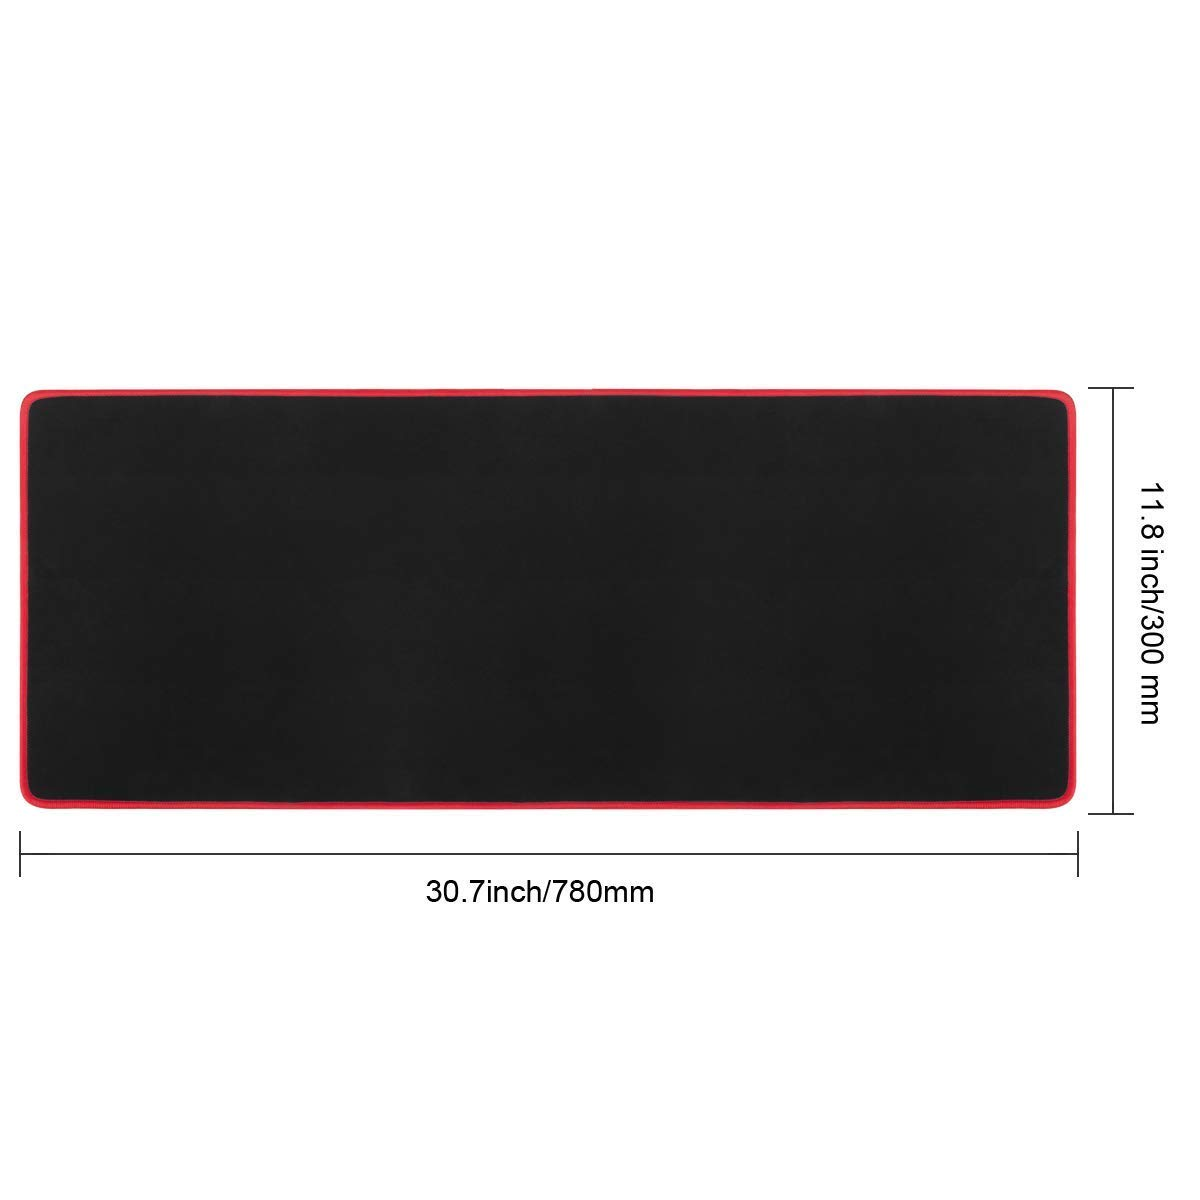 Gaming Mouse Pad, Vellepro XLarge Computer Extended Keyboard Mouse Mat Mousepad, Stitched Edges - Non-Slip Water-Resistant Rubber Base, 31.5 x 11.8 x 0.12 inch - Black